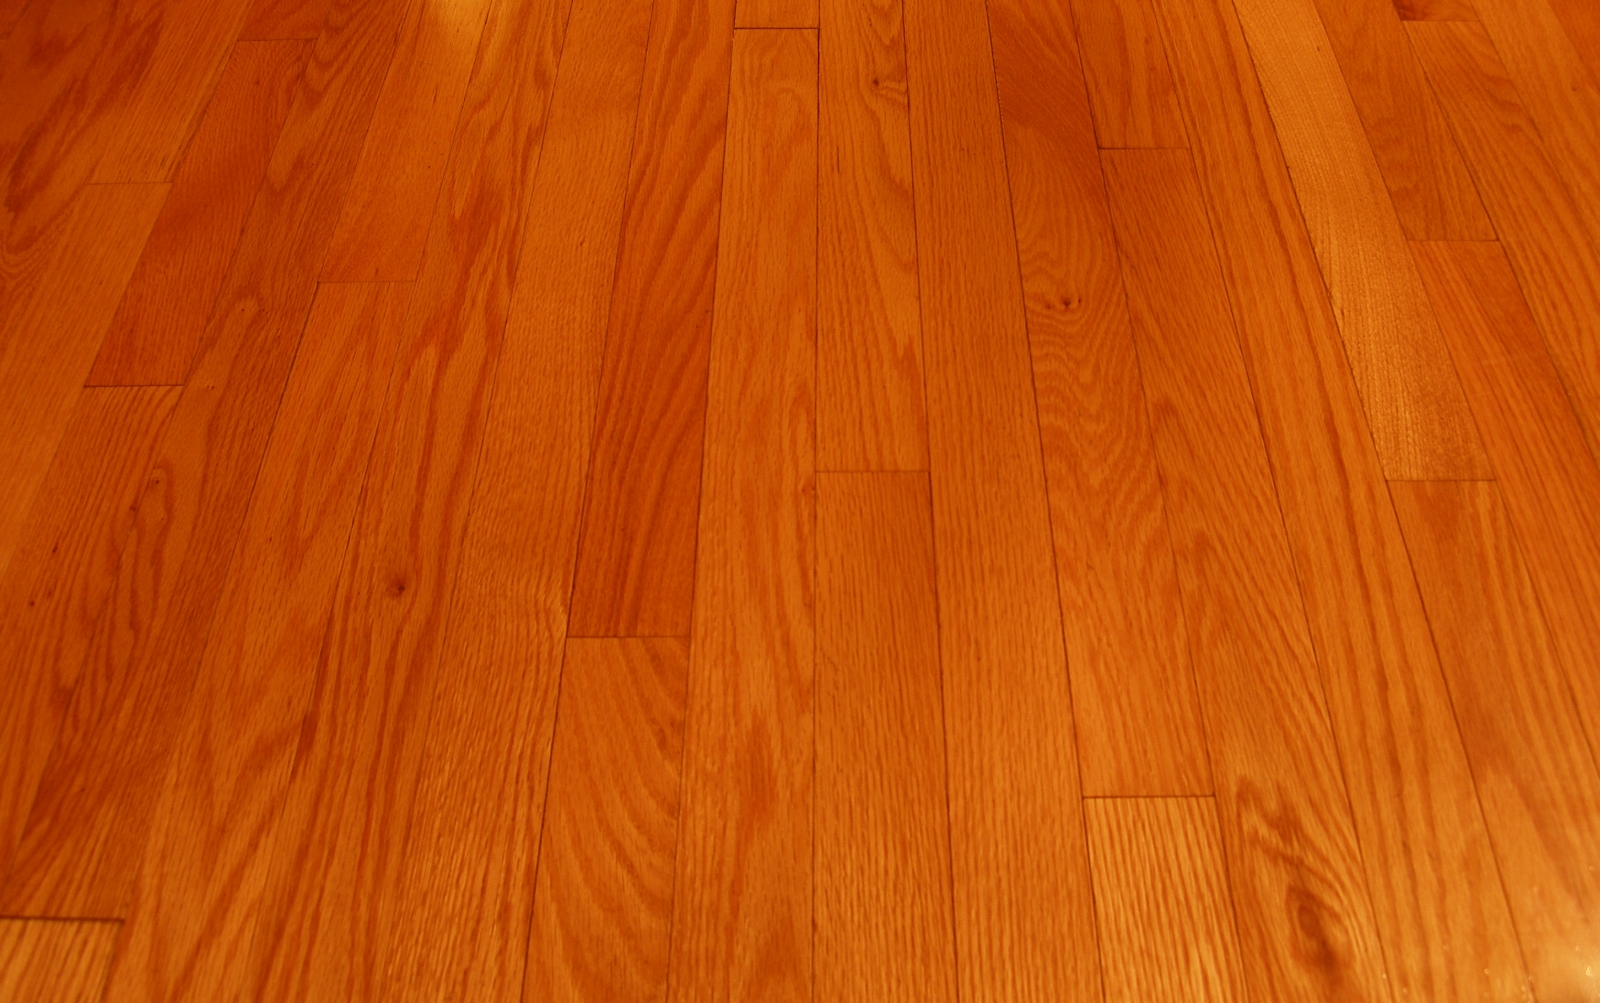 Unique wood floors choosing between solid vs engineered for Hardwood wood flooring